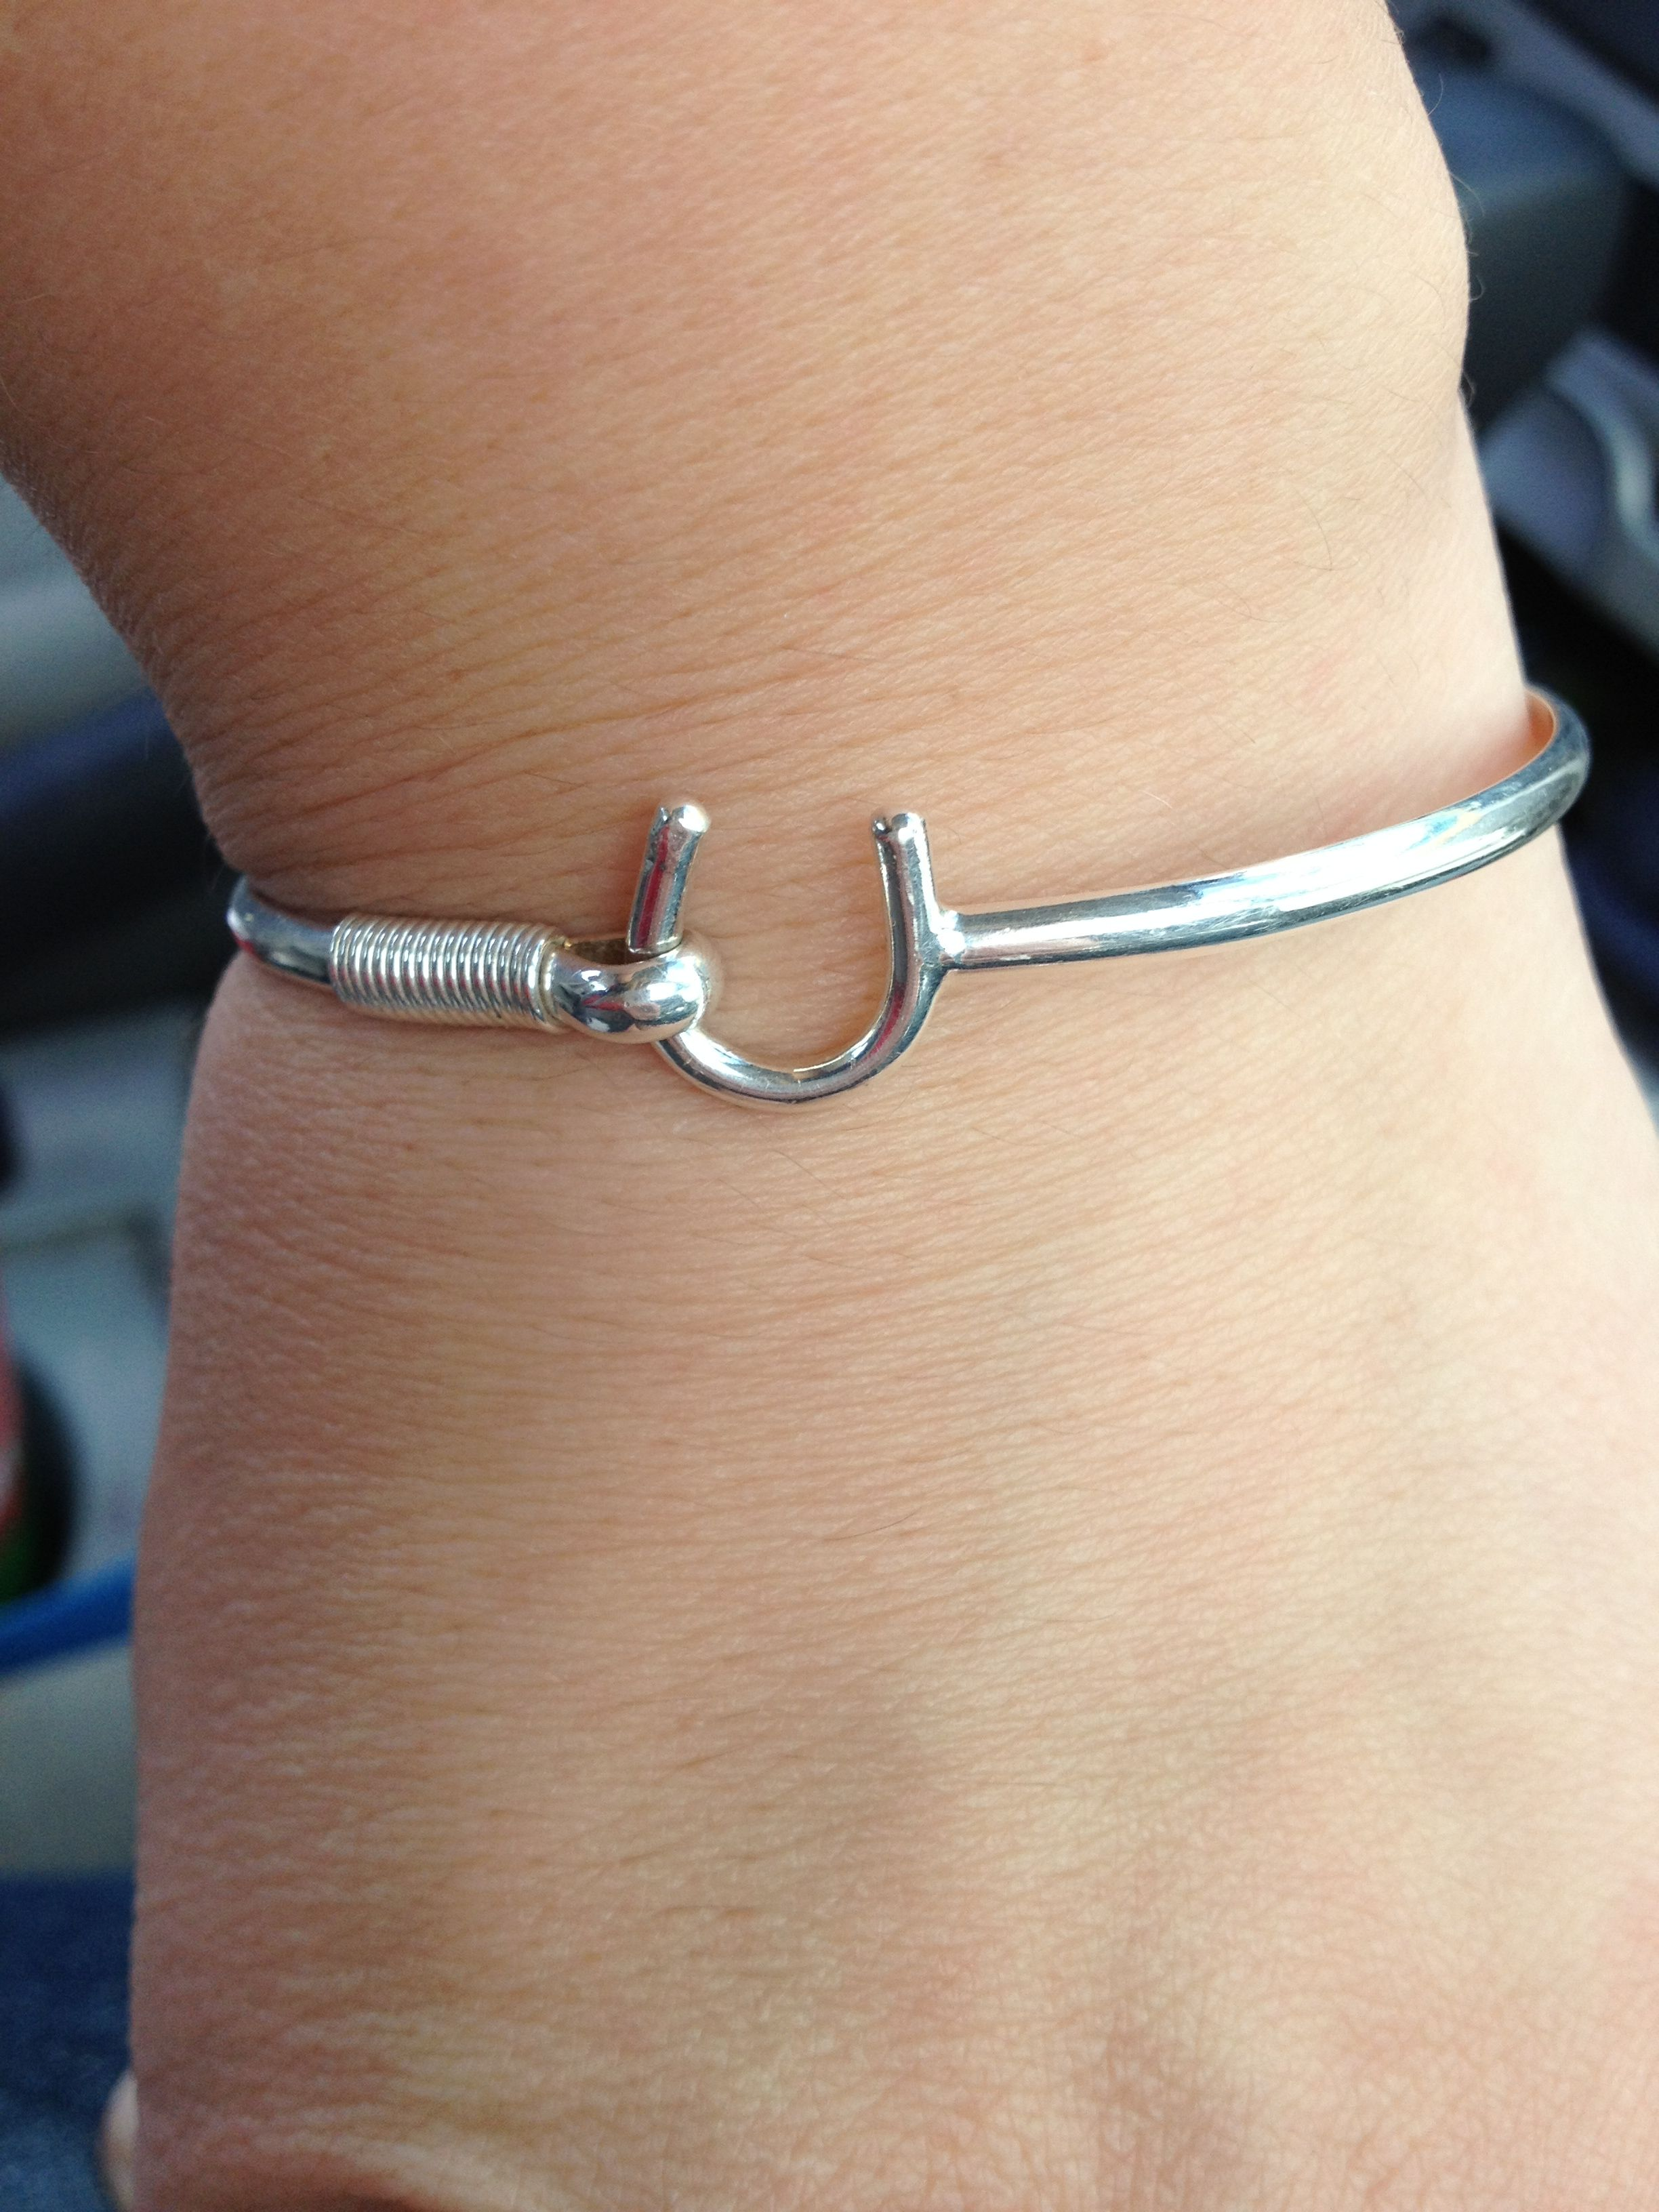 Cruzian Hook Bracelet If The Is Open Toward Your Heart Then You Are Stating Taken It Away From Available